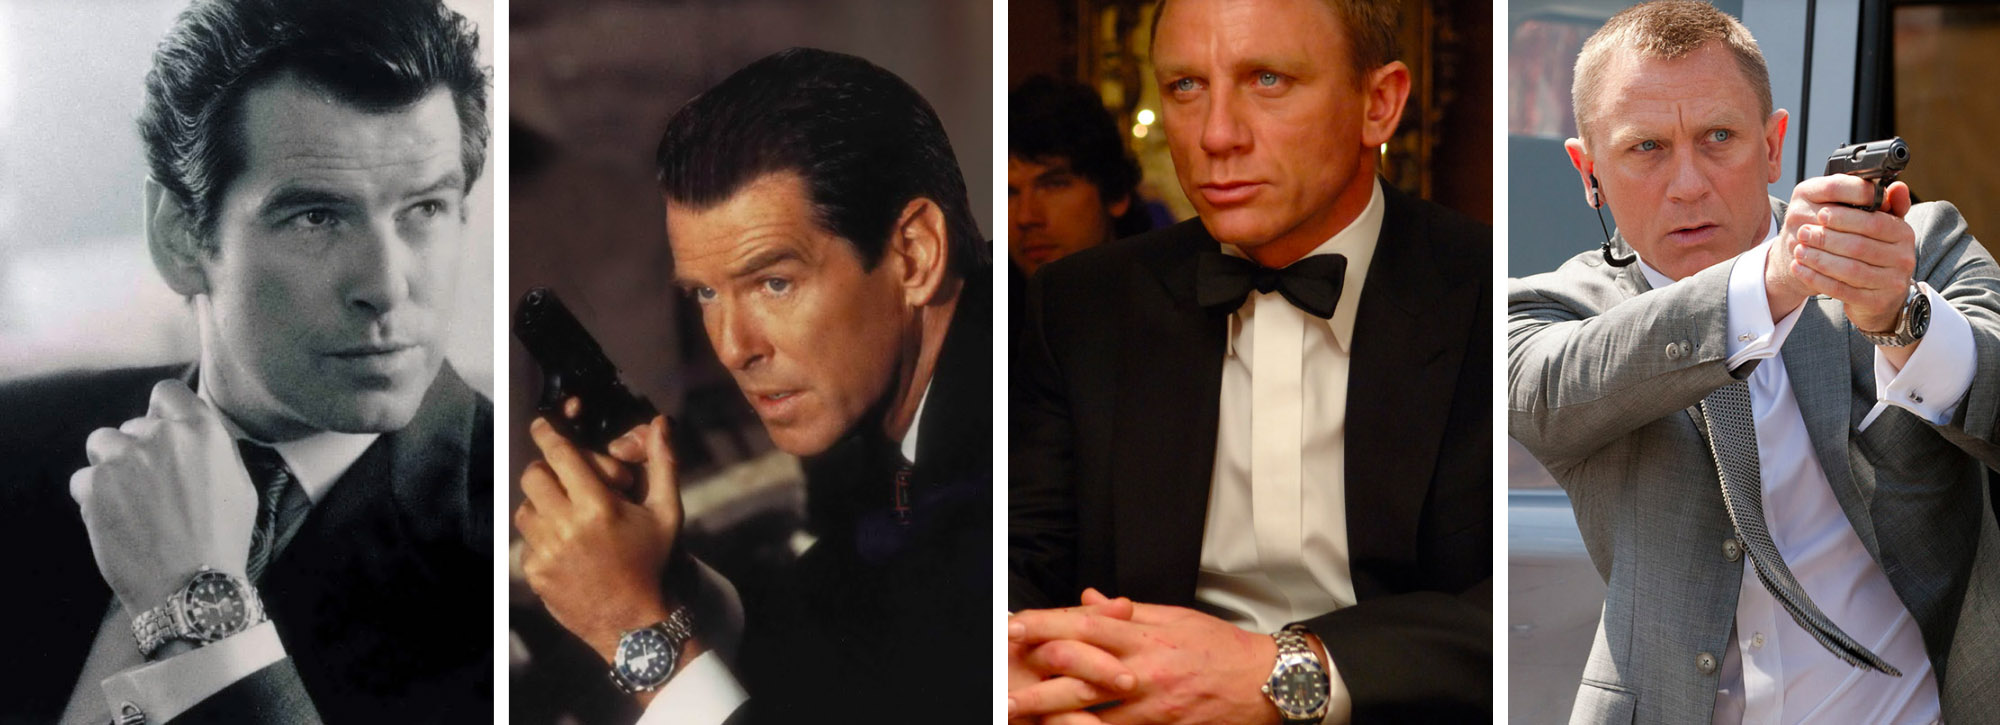 ff2346dbcfe Retrospective - The Entire Omega Seamaster x James Bond 007 History ...